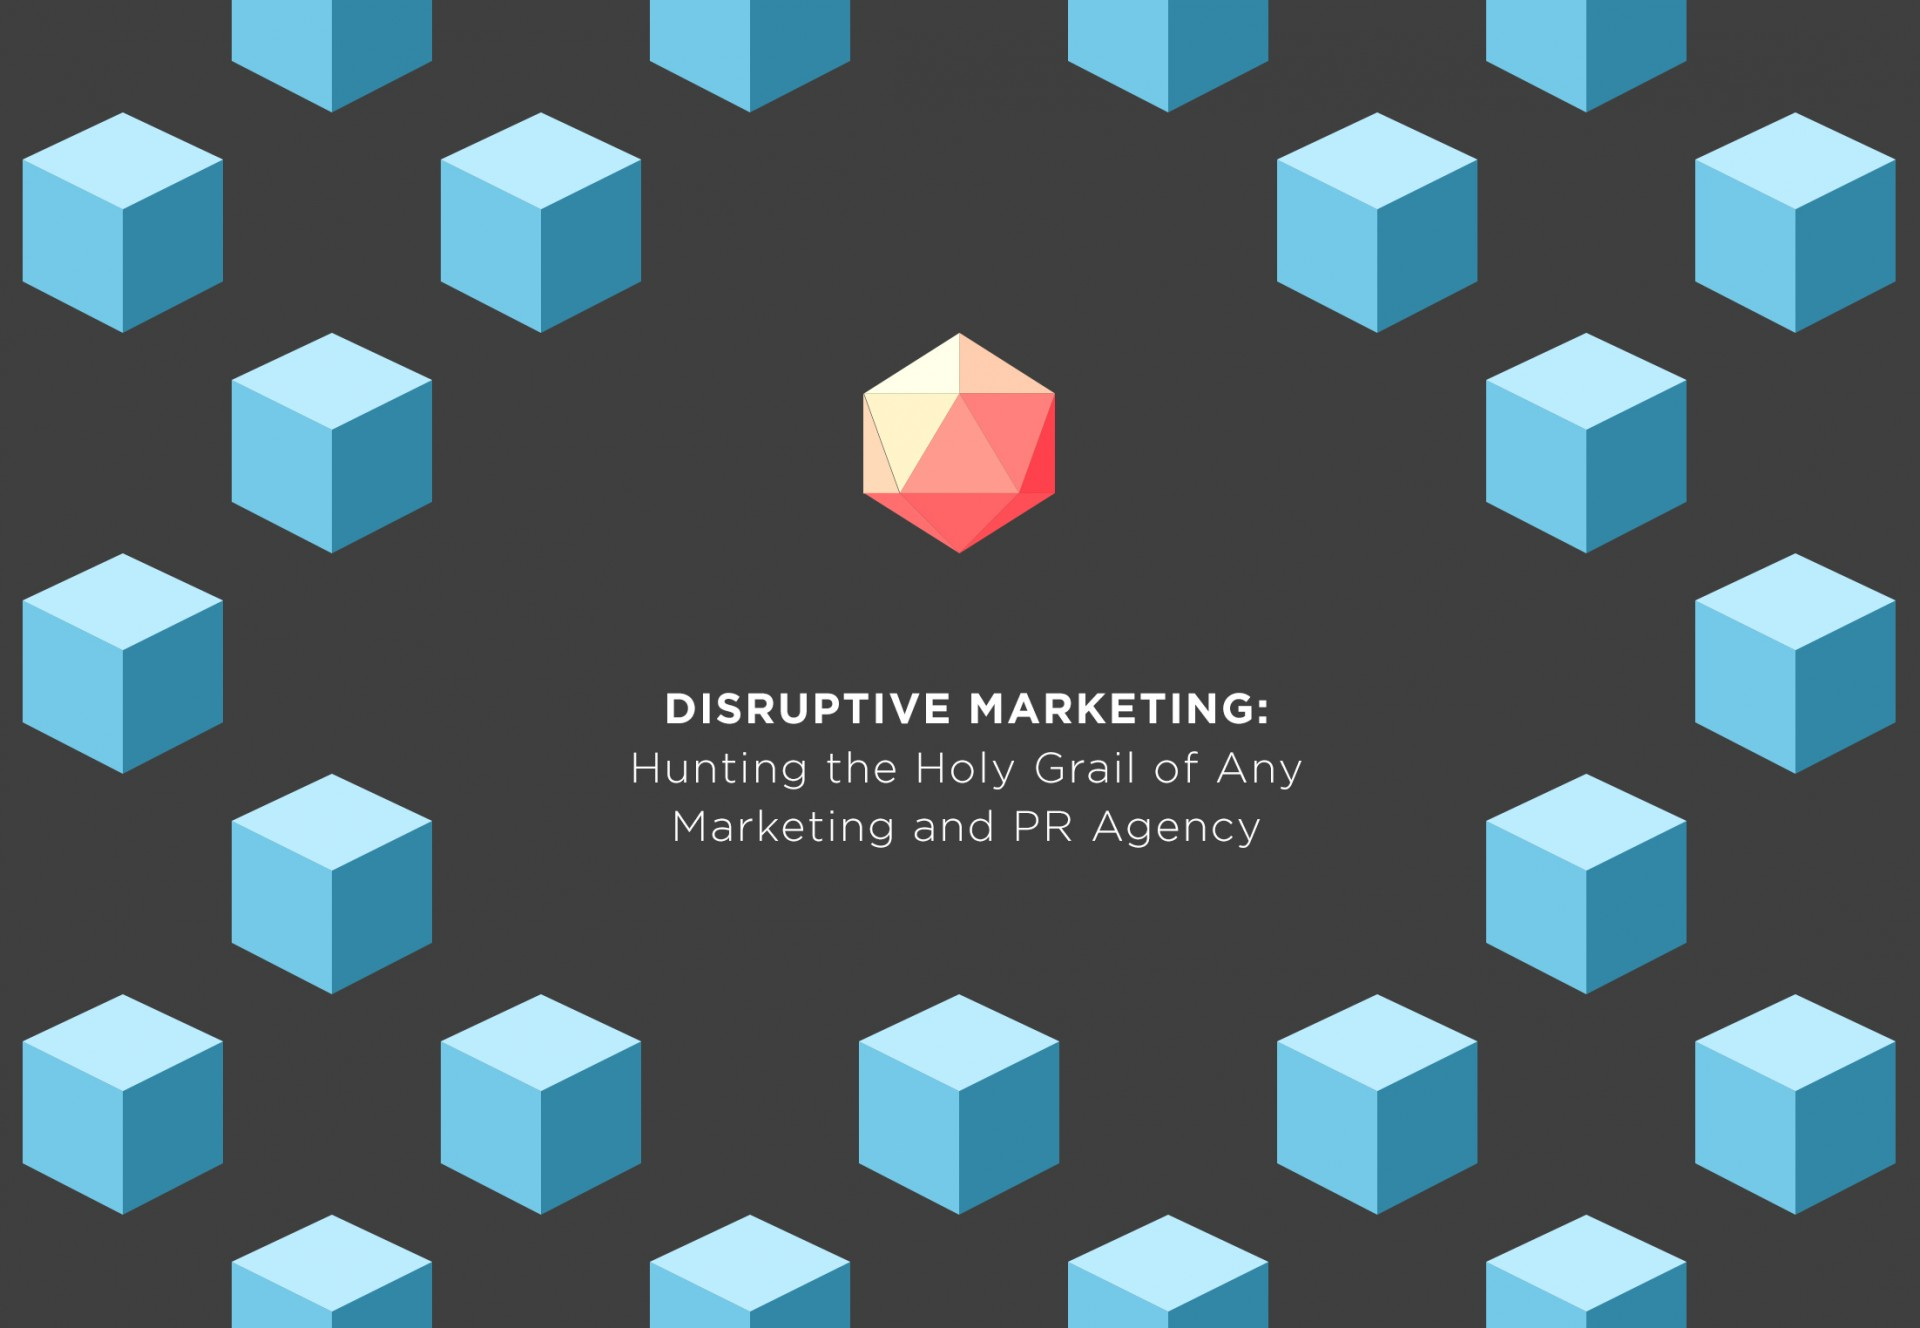 Disruptive Marketing: Hunting the Holy Grail of Any Marketing and PR Agency